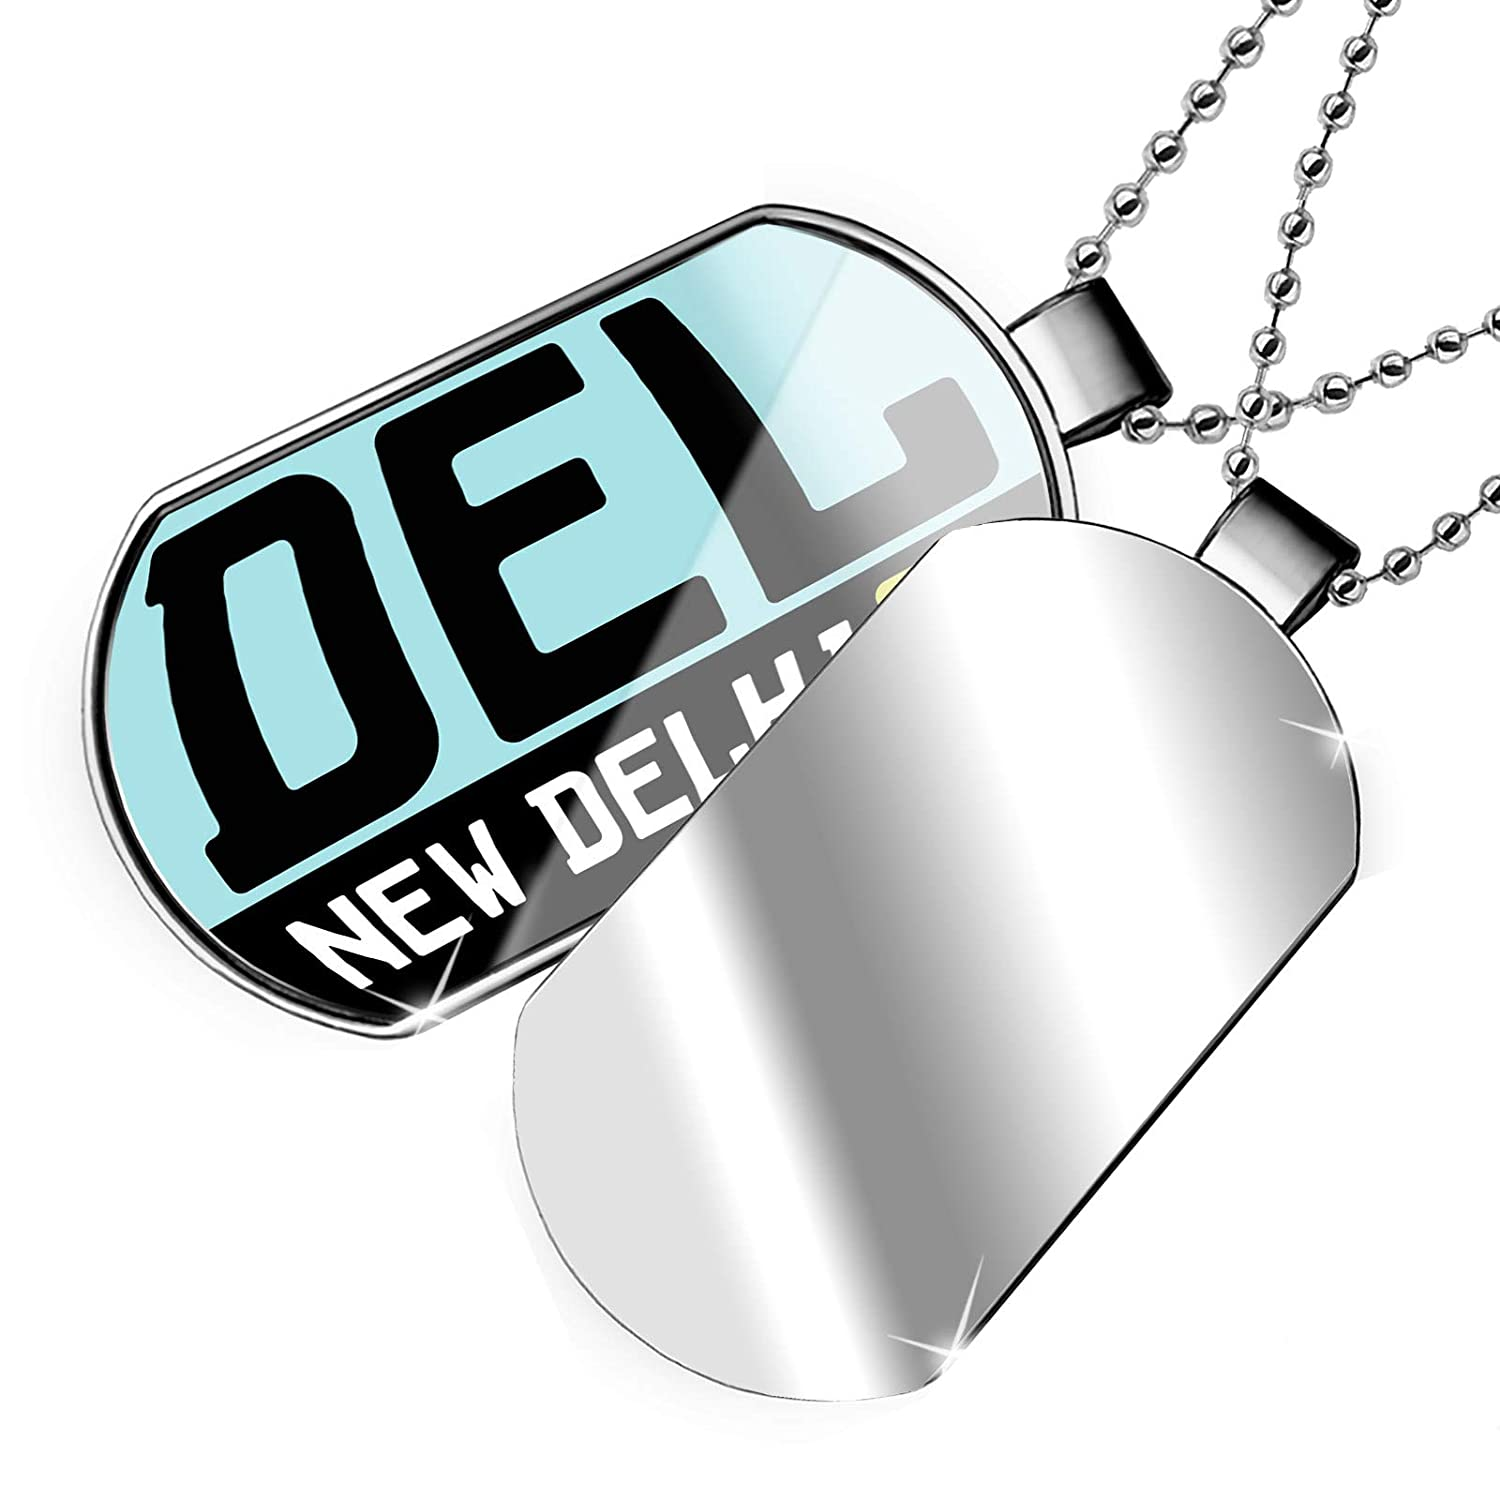 India Dogtag Necklace NEONBLOND Personalized Name Engraved Airport Code DEL//New Delhi Country